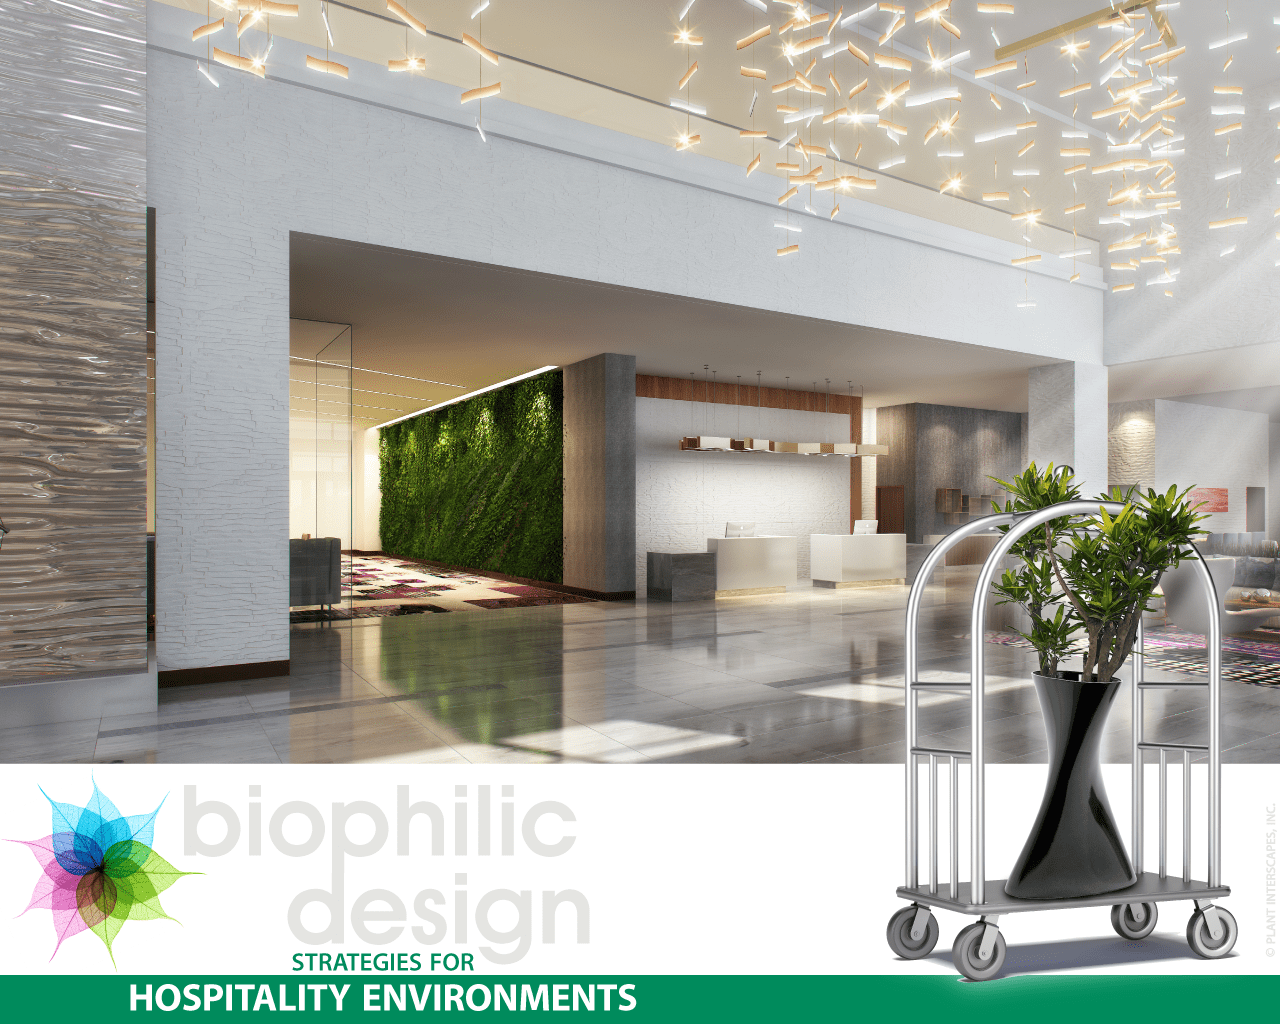 Biophilic hotel design strategies